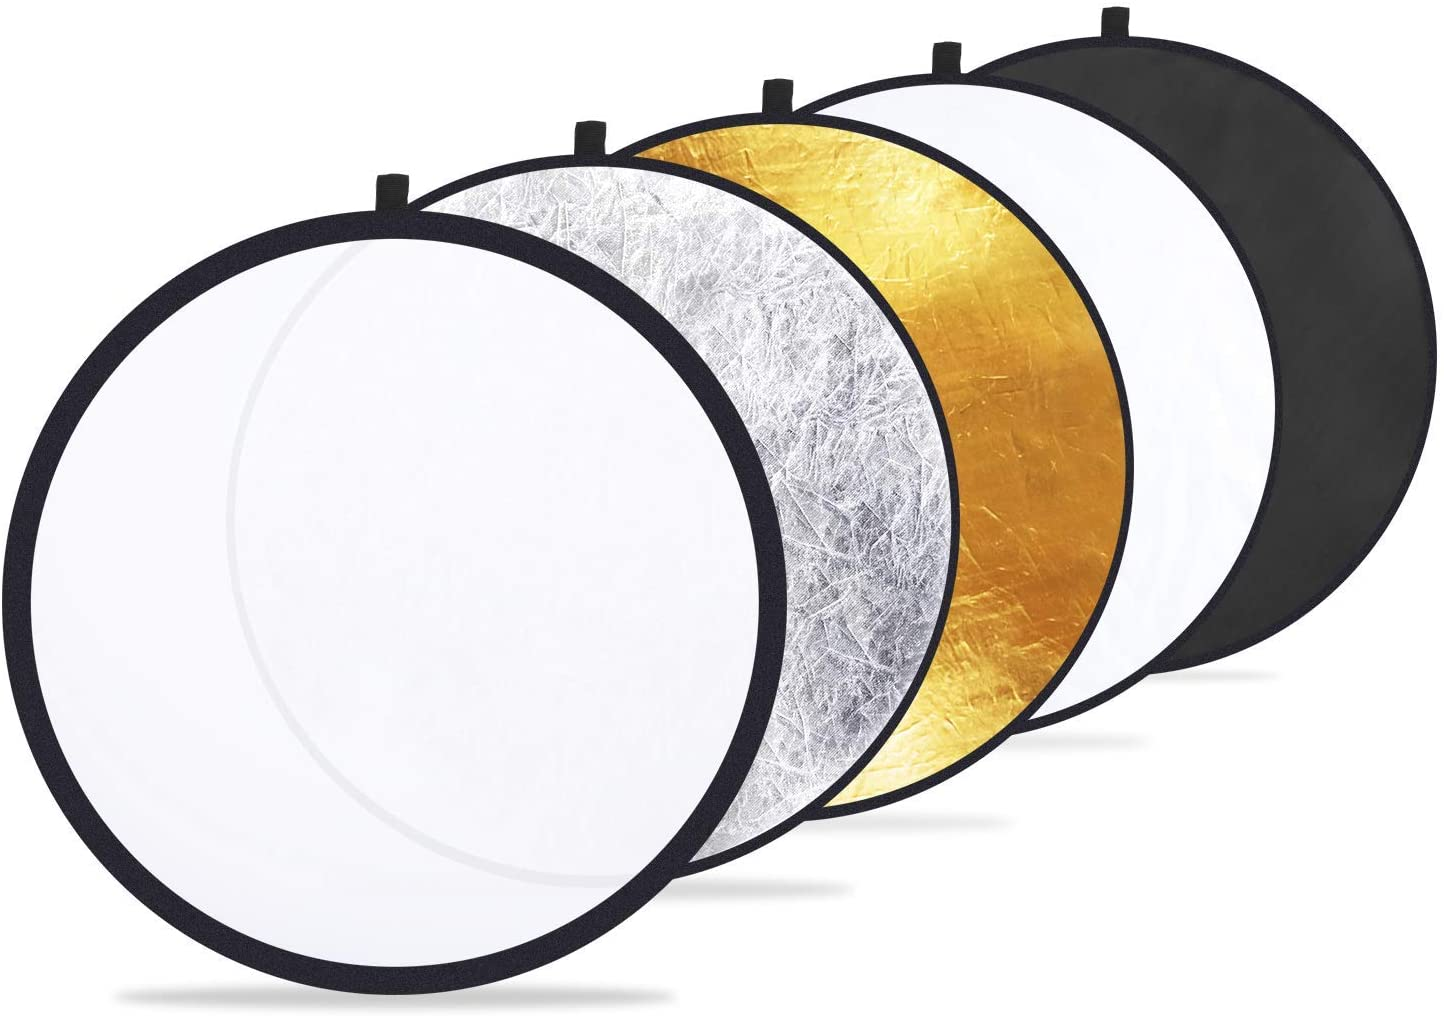 10 Pcs 5-in-1 Collapsible Multi-Disc Light Reflector Gold Silver Black White Soft Light Five Colors Foldable Background Board 60cm Suitable For Indoor And Outdoor Photography Lighting Reflectors